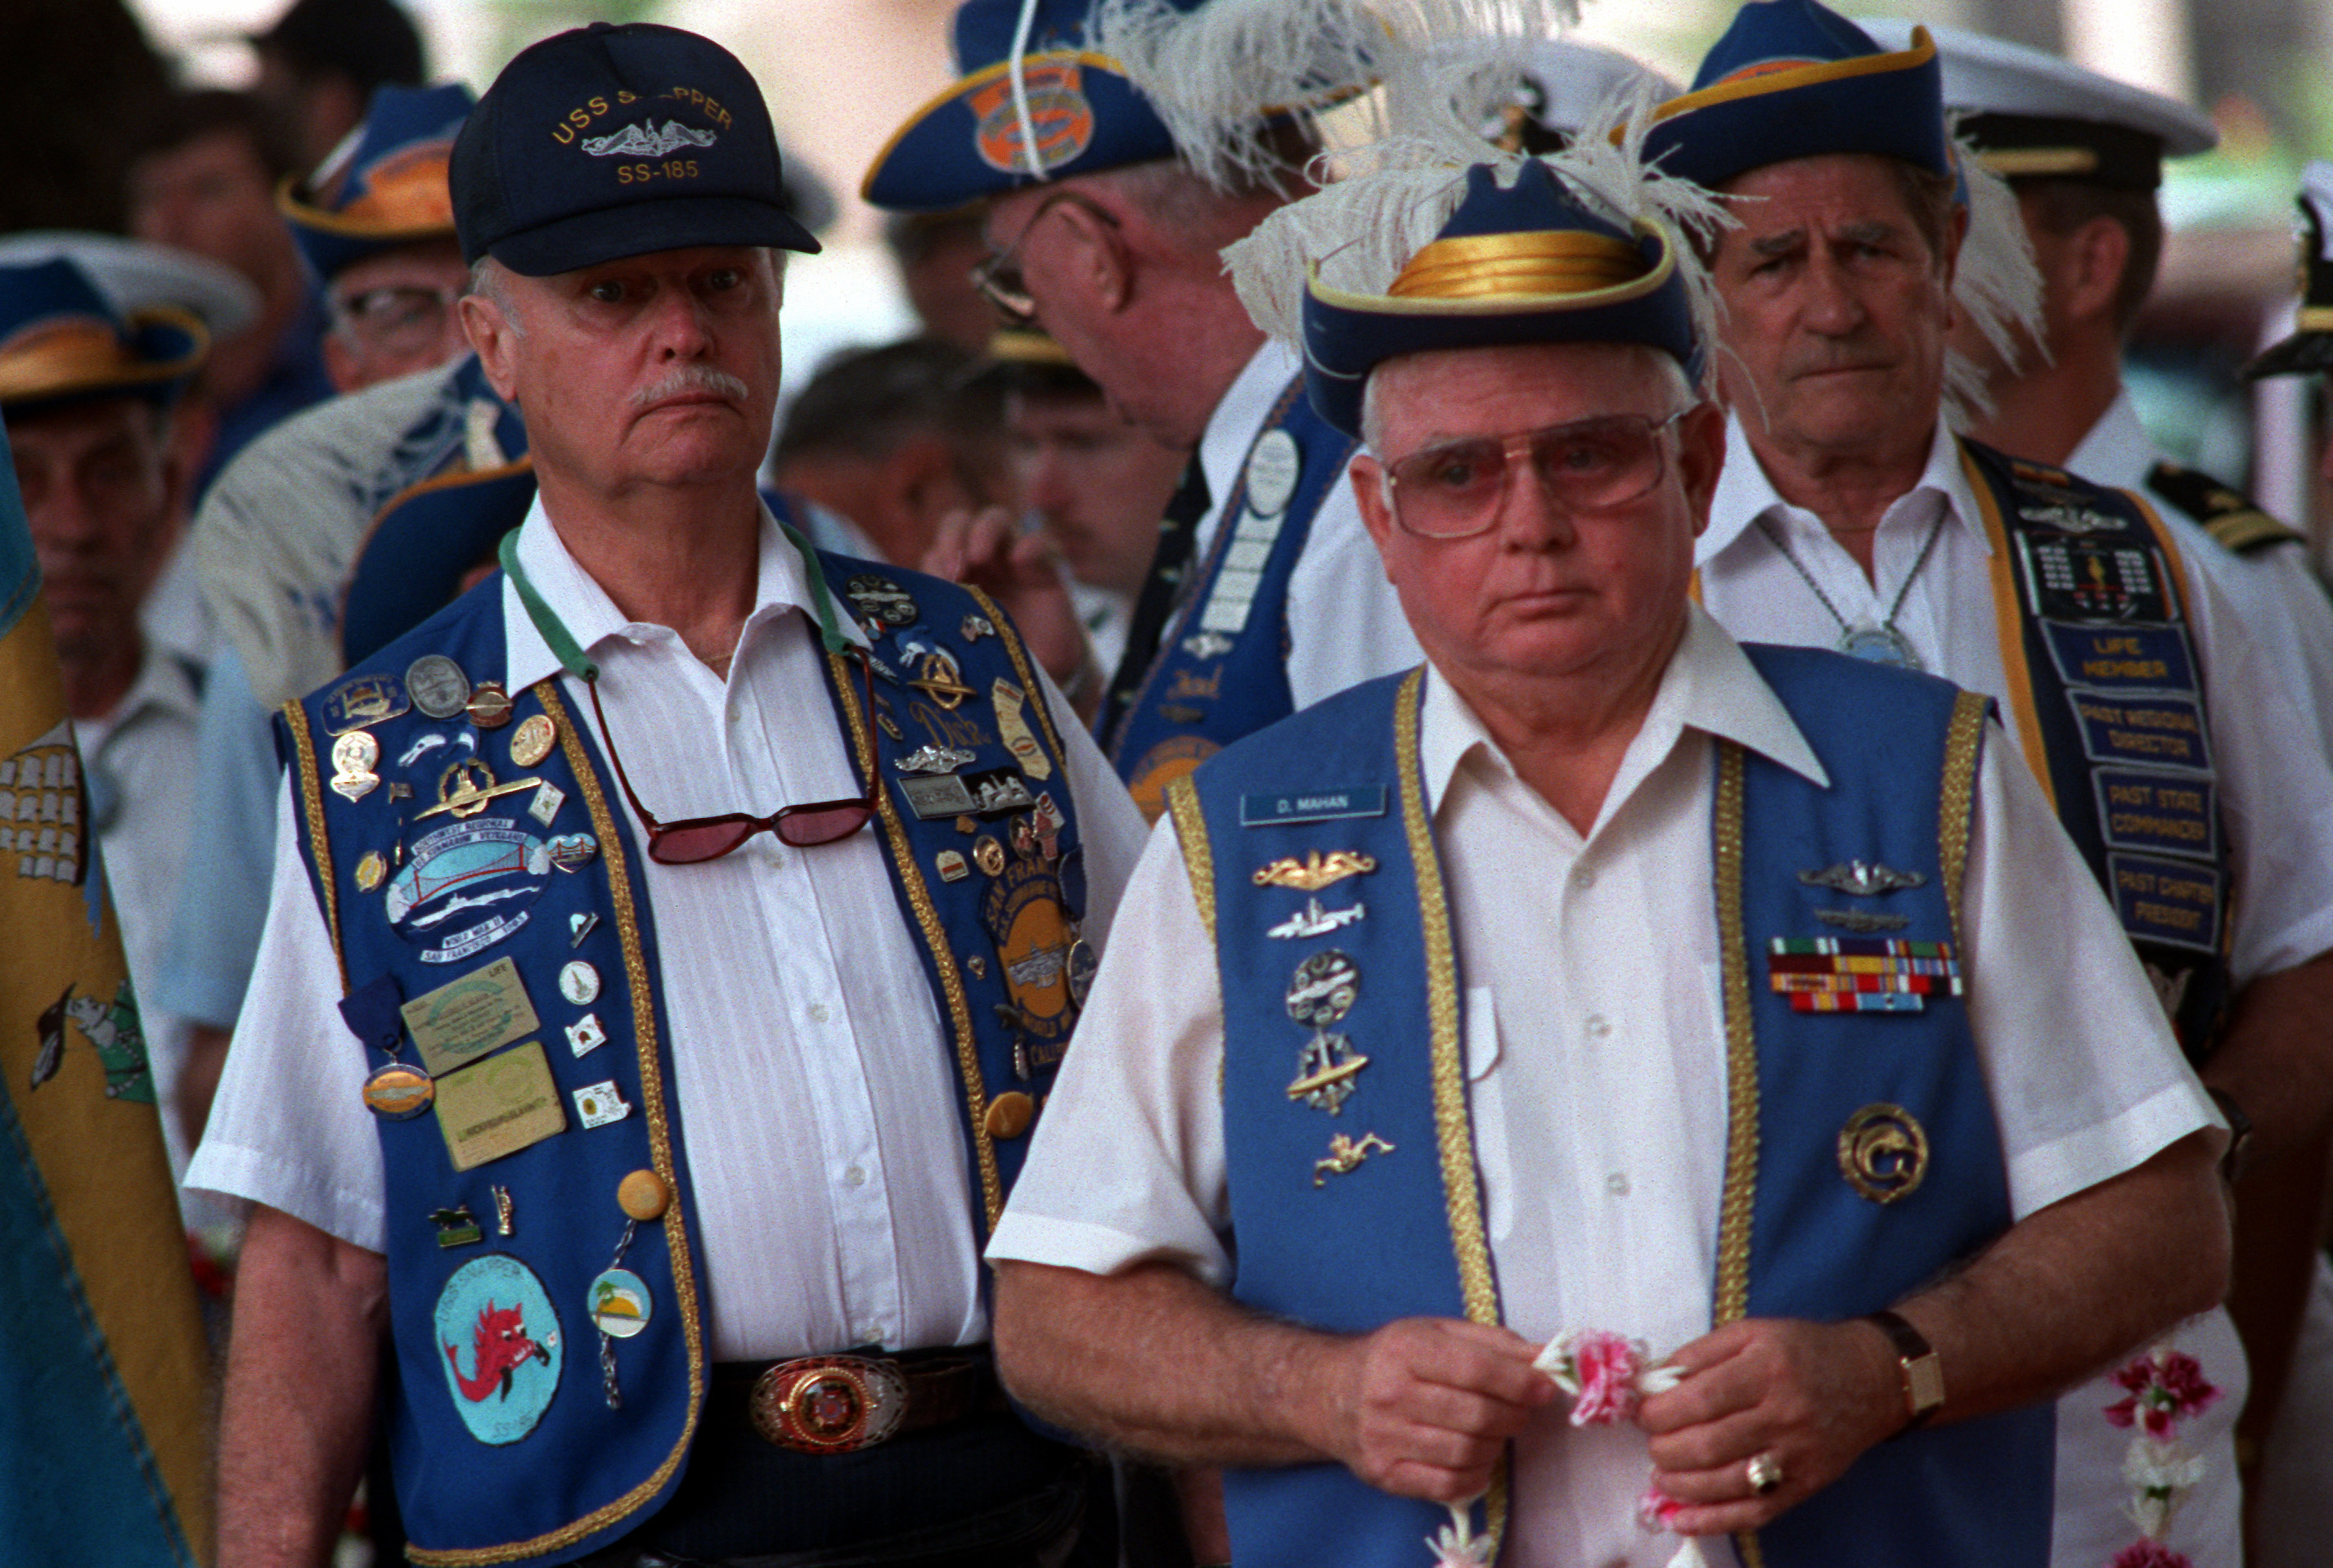 World War II submarine veterans take part in a ceremony honoring their counterparts who lost their lives during the war. The ceremony is taking place as part of an observance of the 50th anniversary of the Japanese attack on Pearl Harbor. 12/06/1991. NAI 6476472.